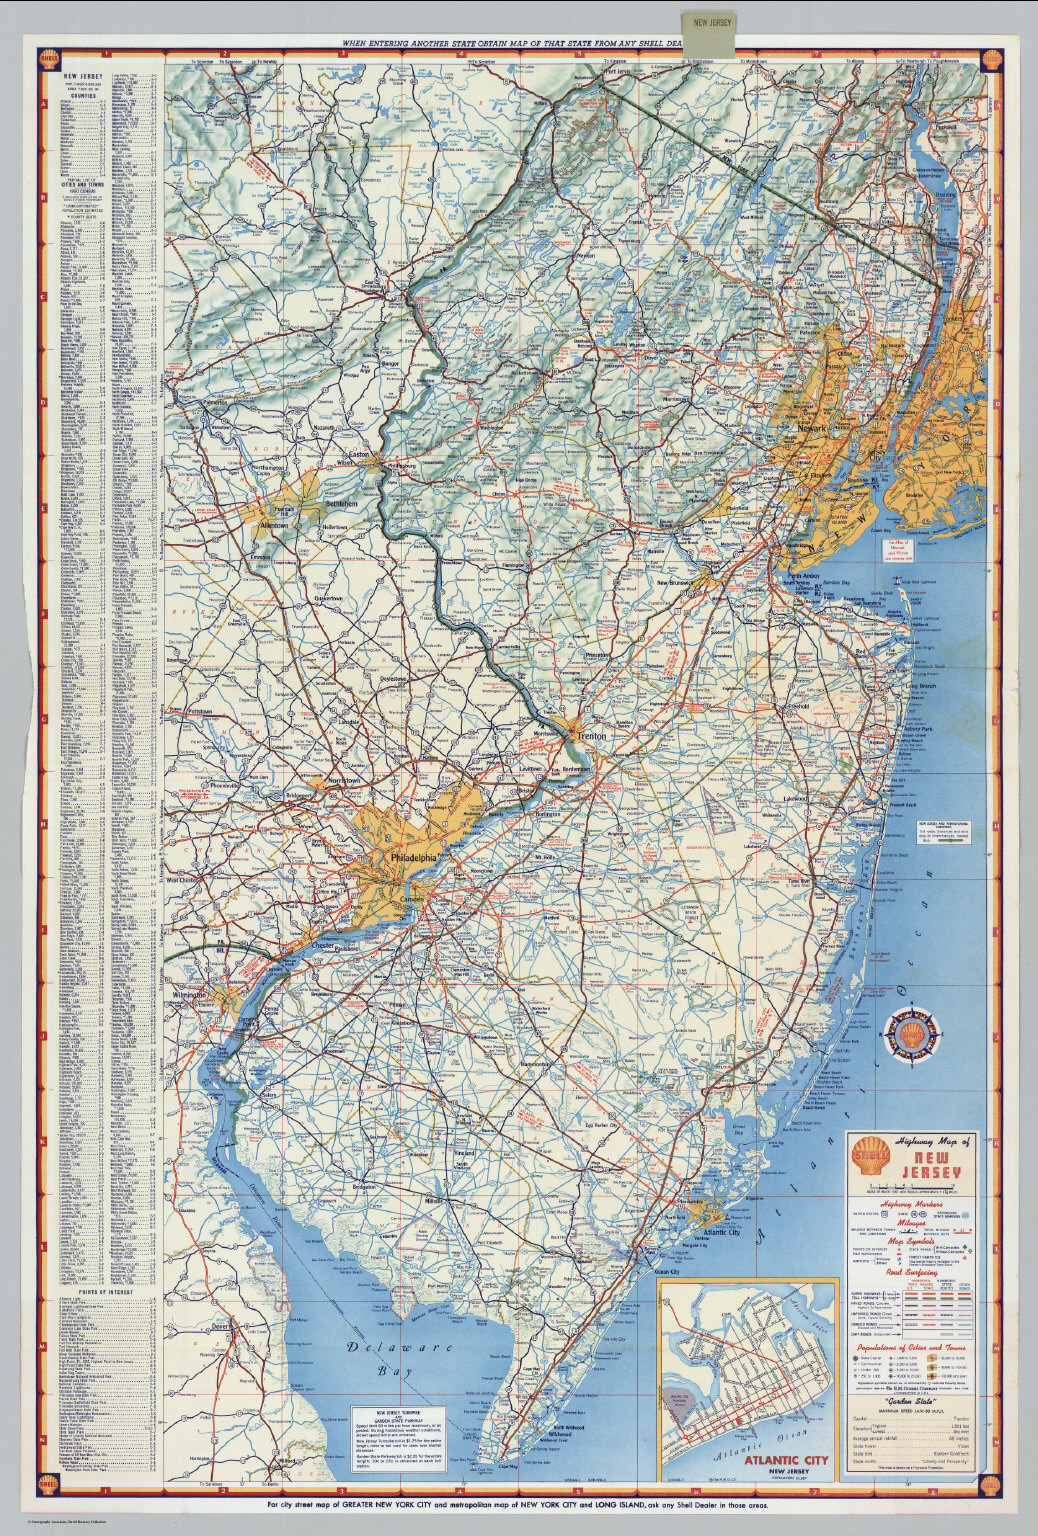 Shell Highway Map Of New Jersey David Rumsey Historical Map - Nj road map